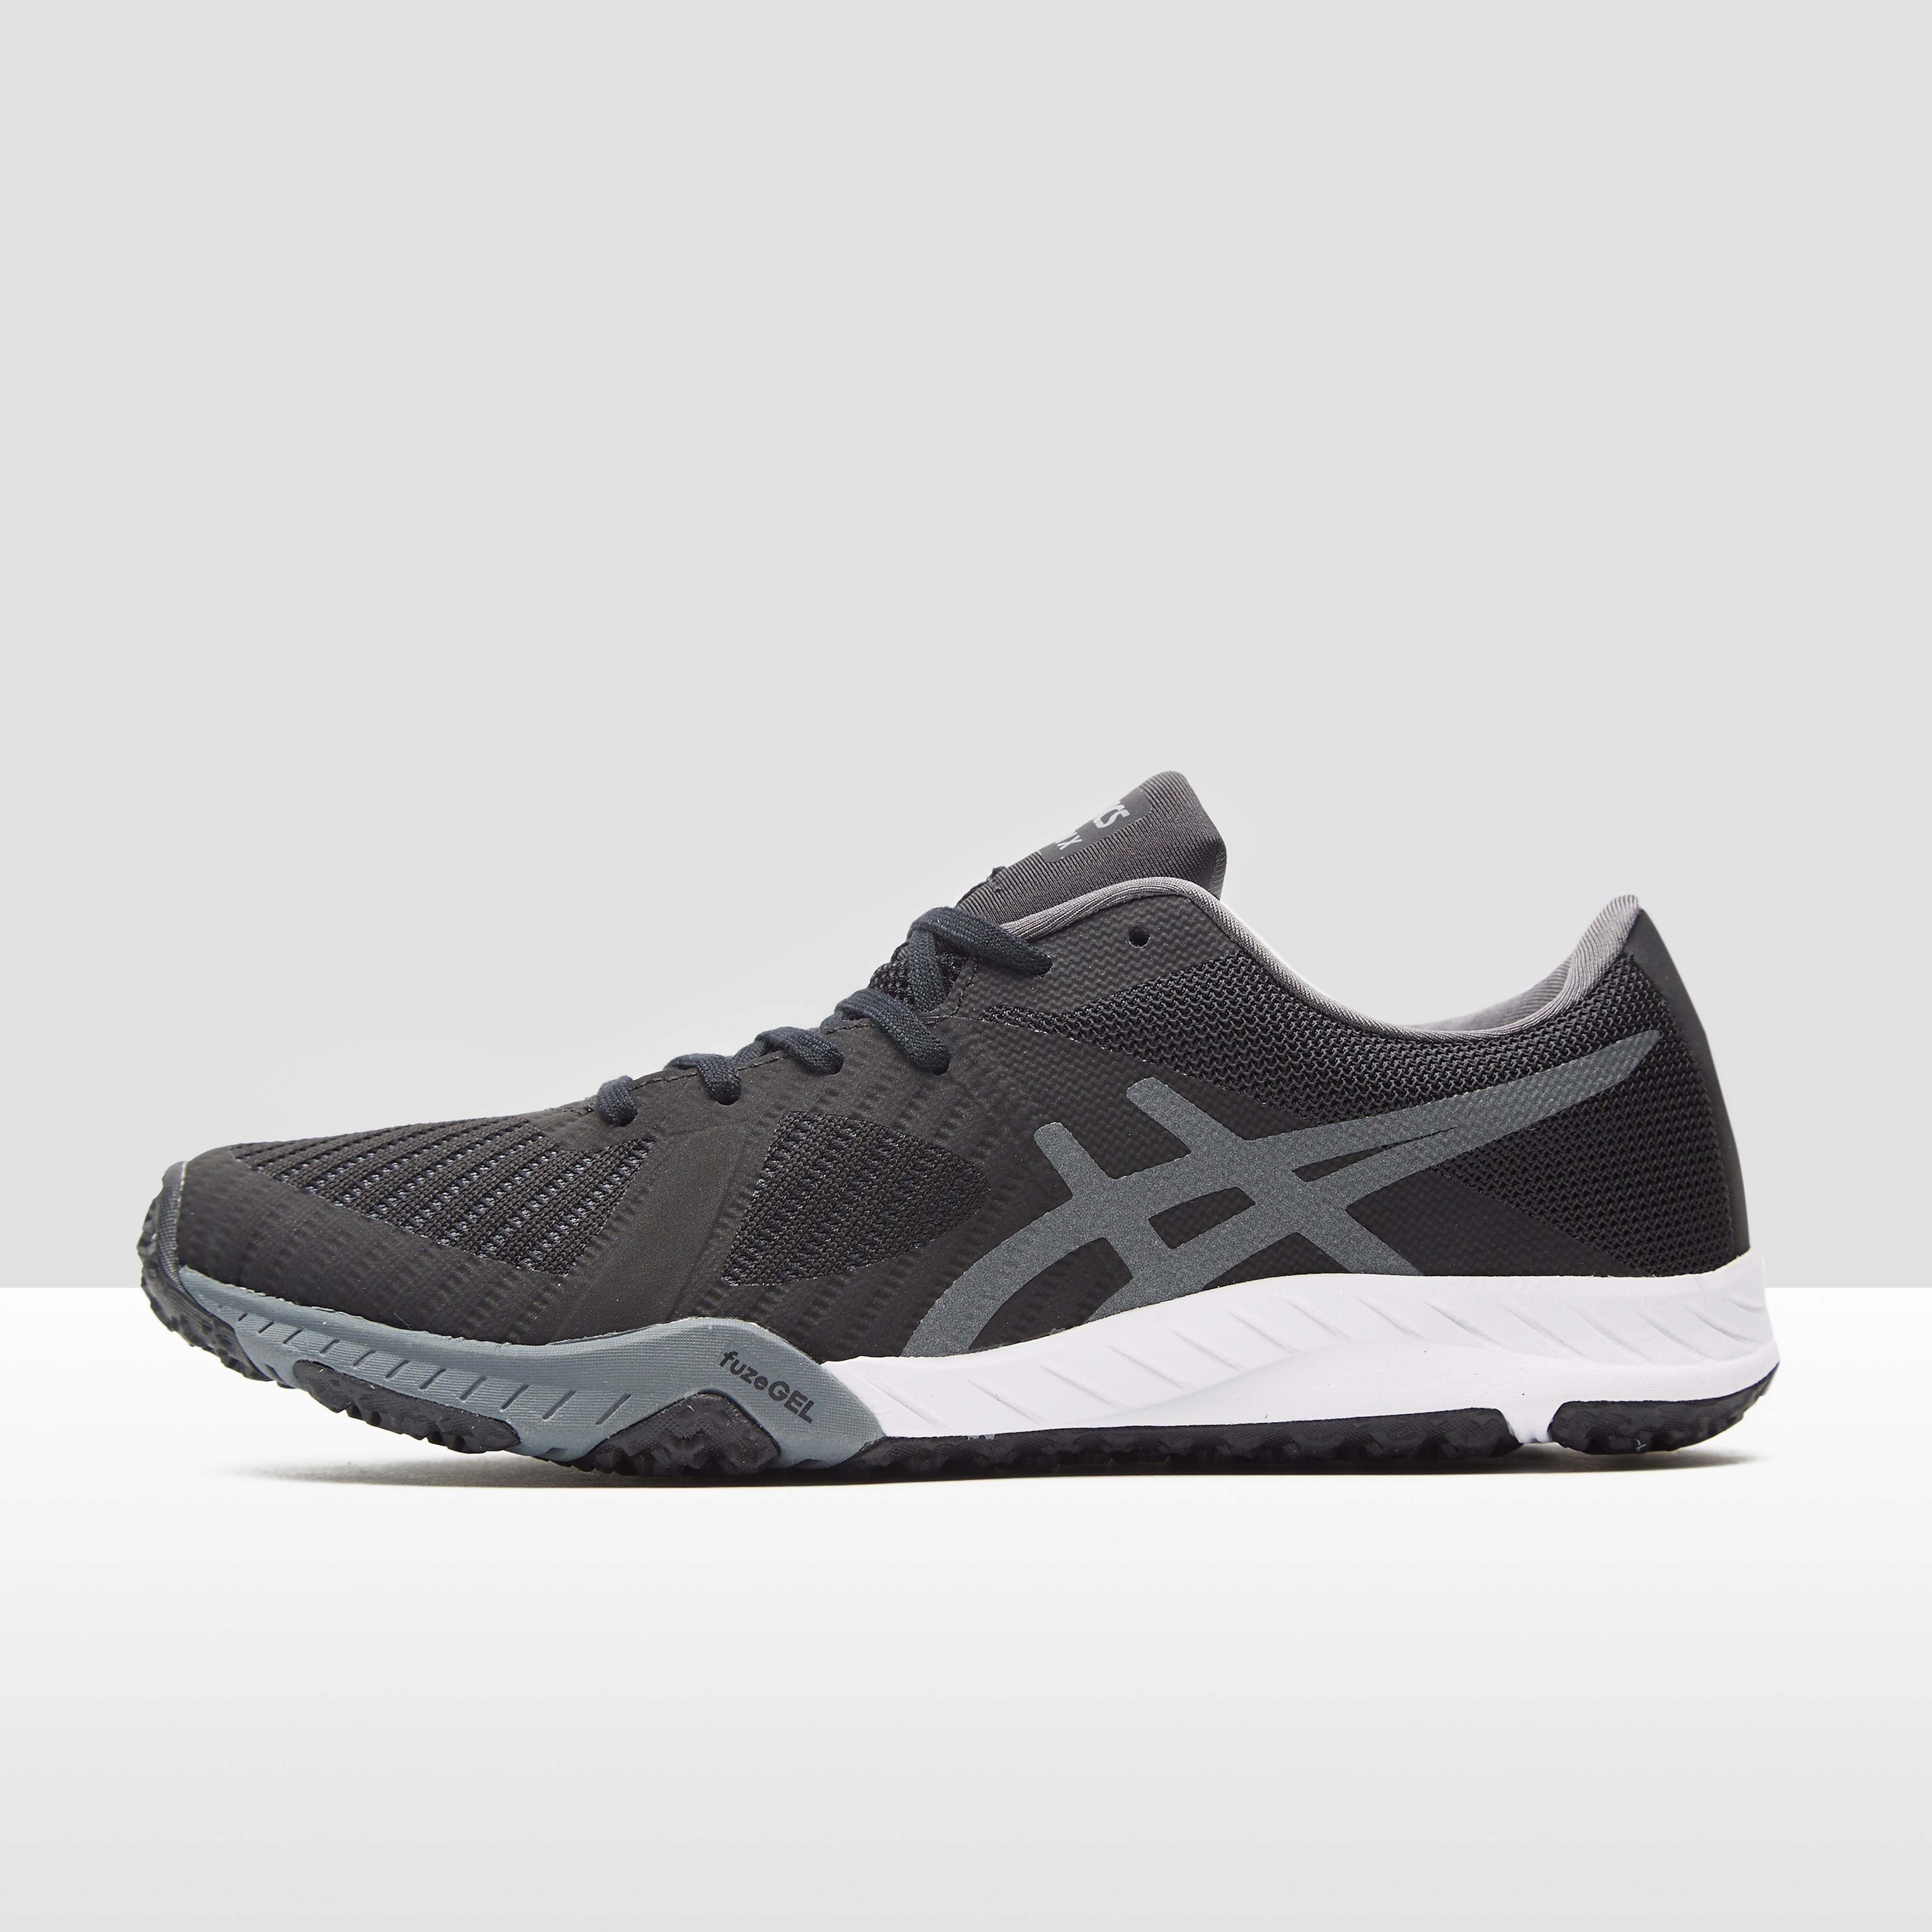 ASICS Weldon X Women's Training Shoes